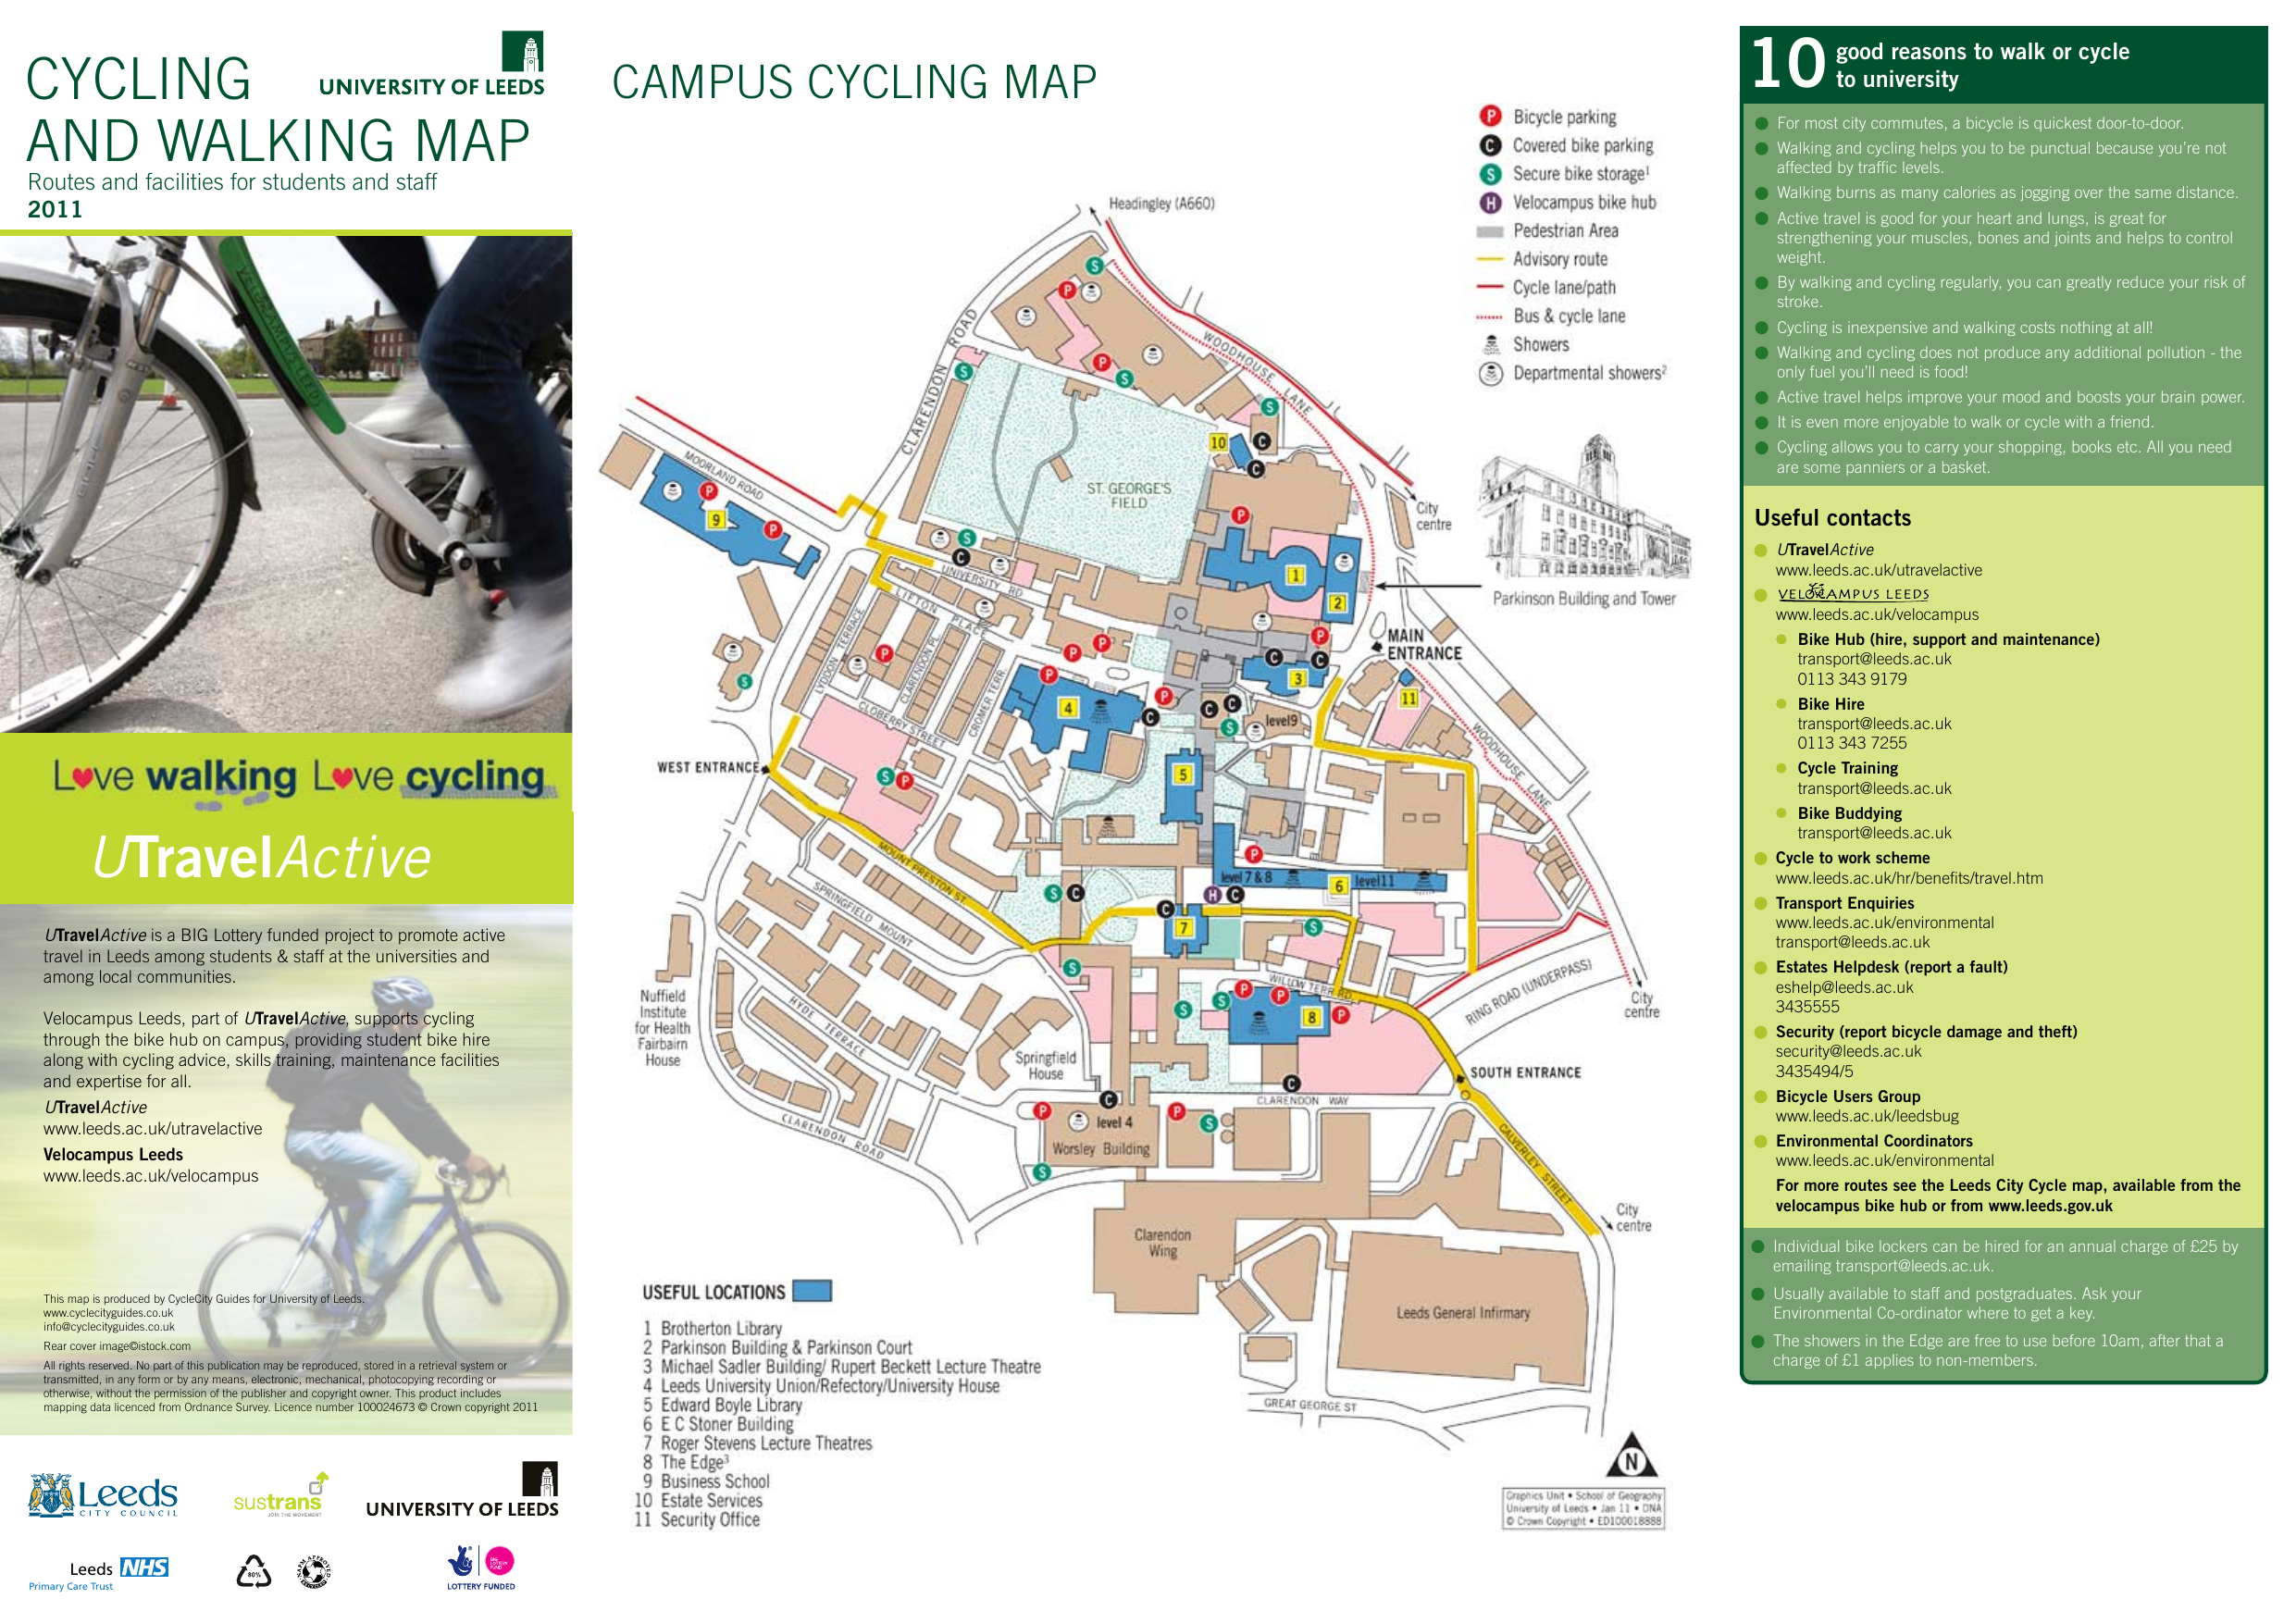 walking and cycling map on